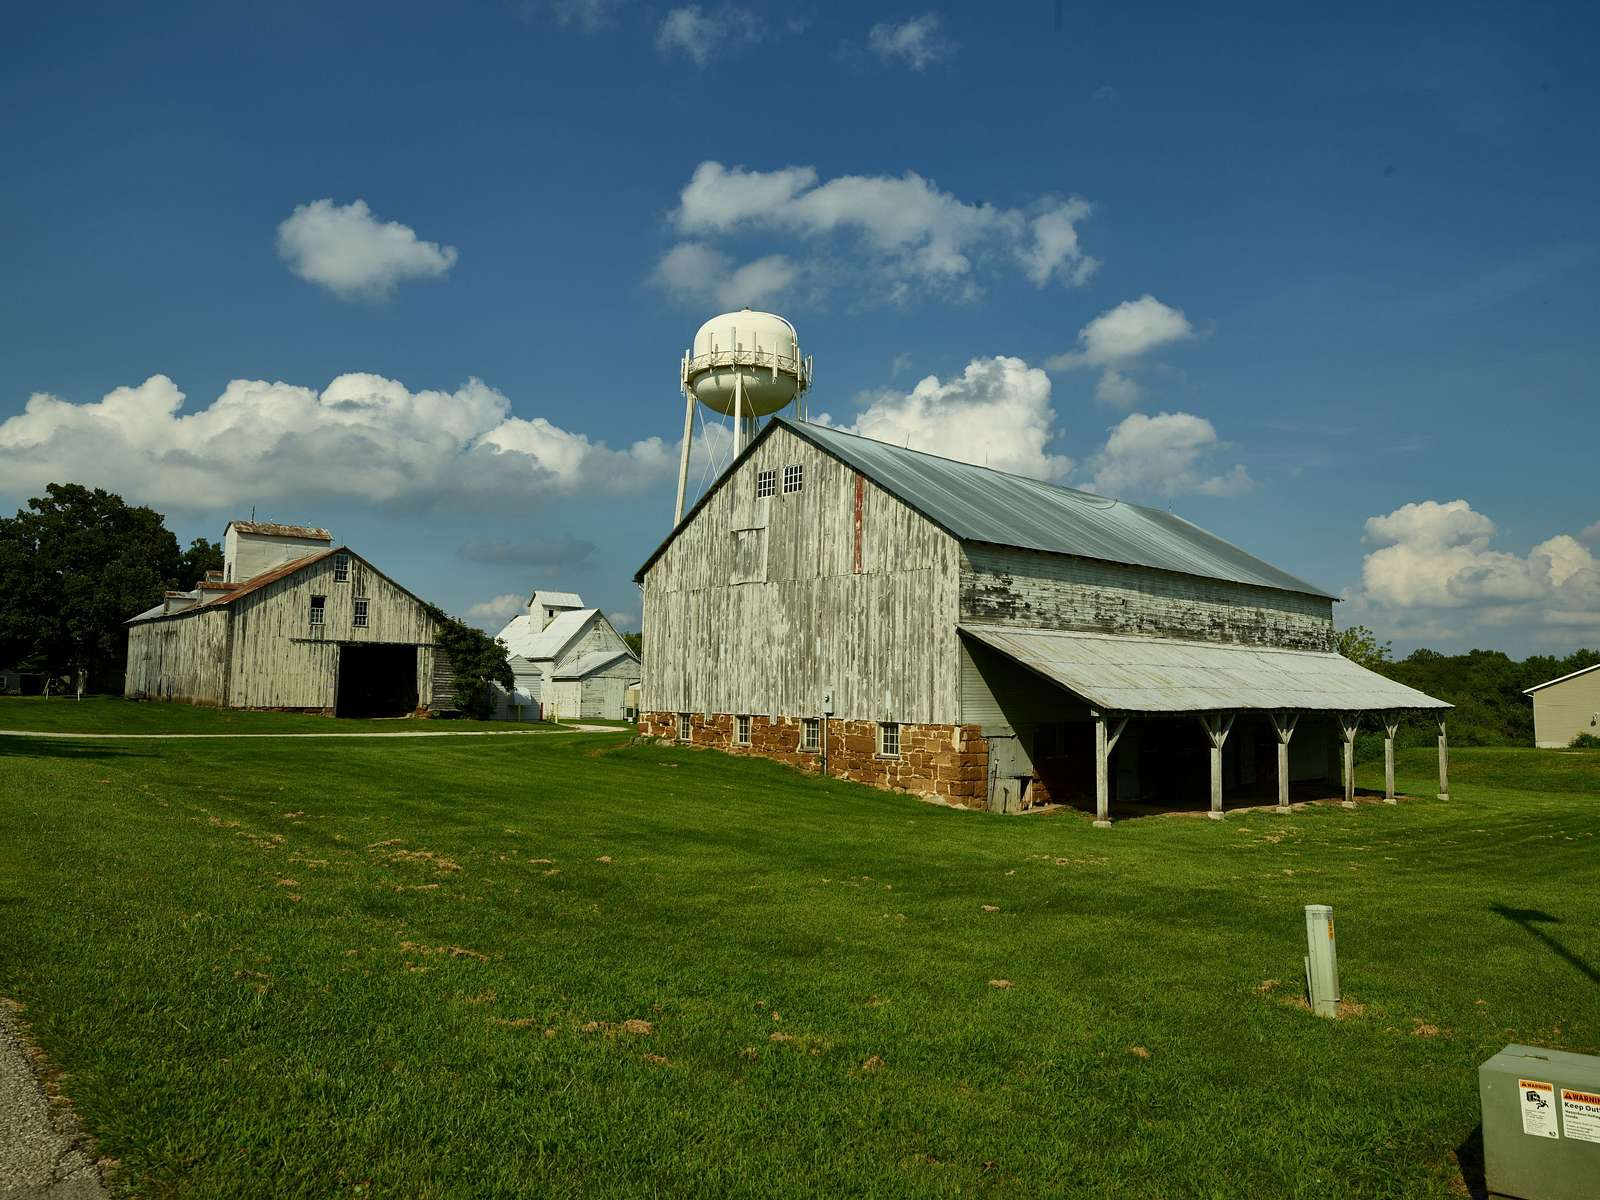 Barns in Amana, one of the Amana Colonies, seven villages in Iowa County, Iowa